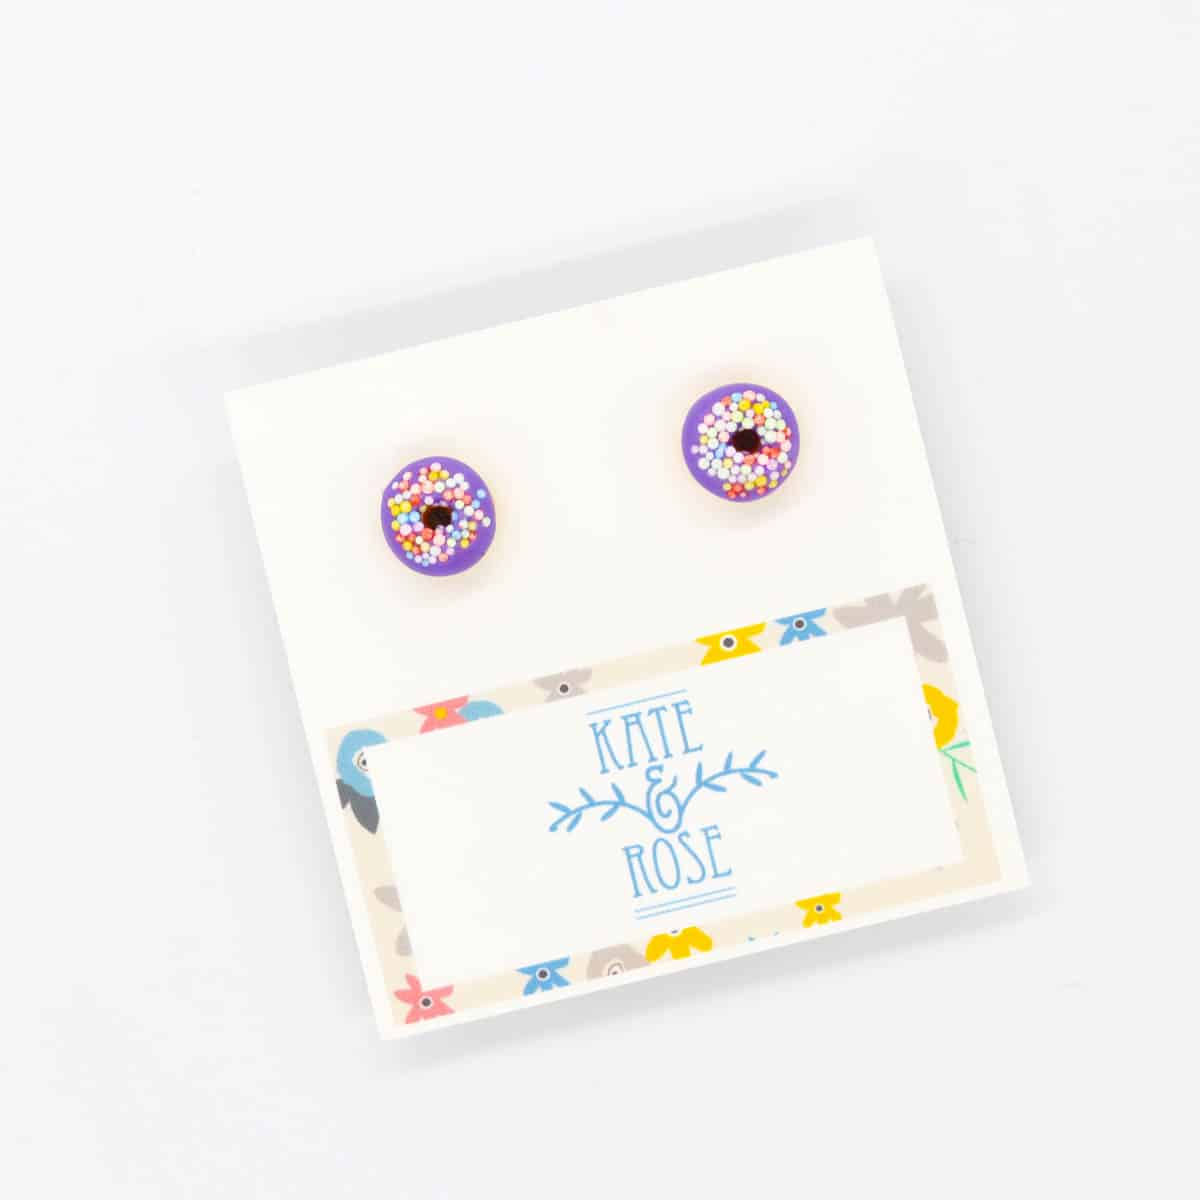 pc-purple-sprinkle-donuts-by-kate-and-rose-fitzroy-122875-katenrosetea